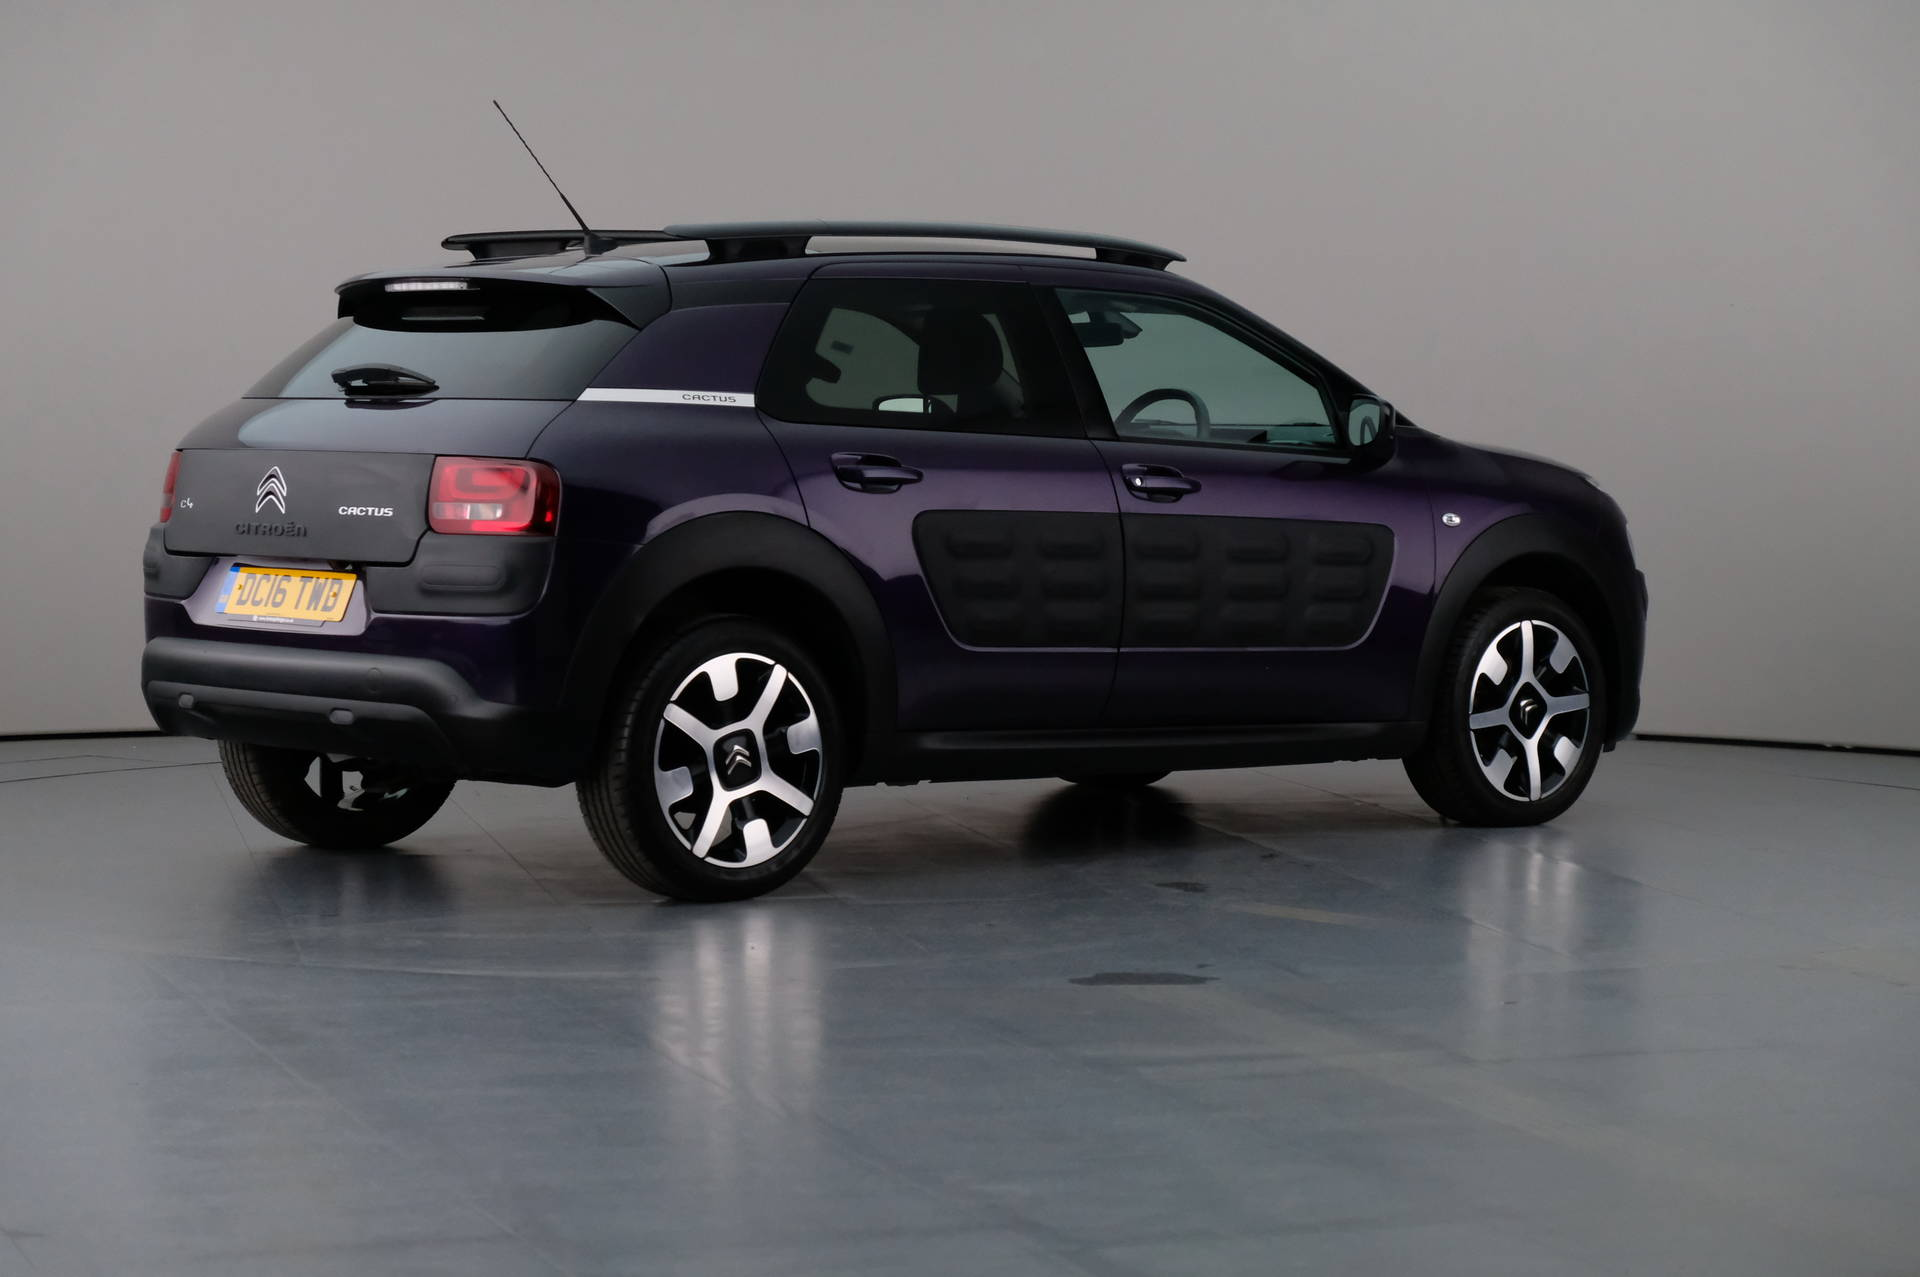 Citroën C4 Cactus 1.6 Blue HDi Flair Edition 5dr, 360-image27